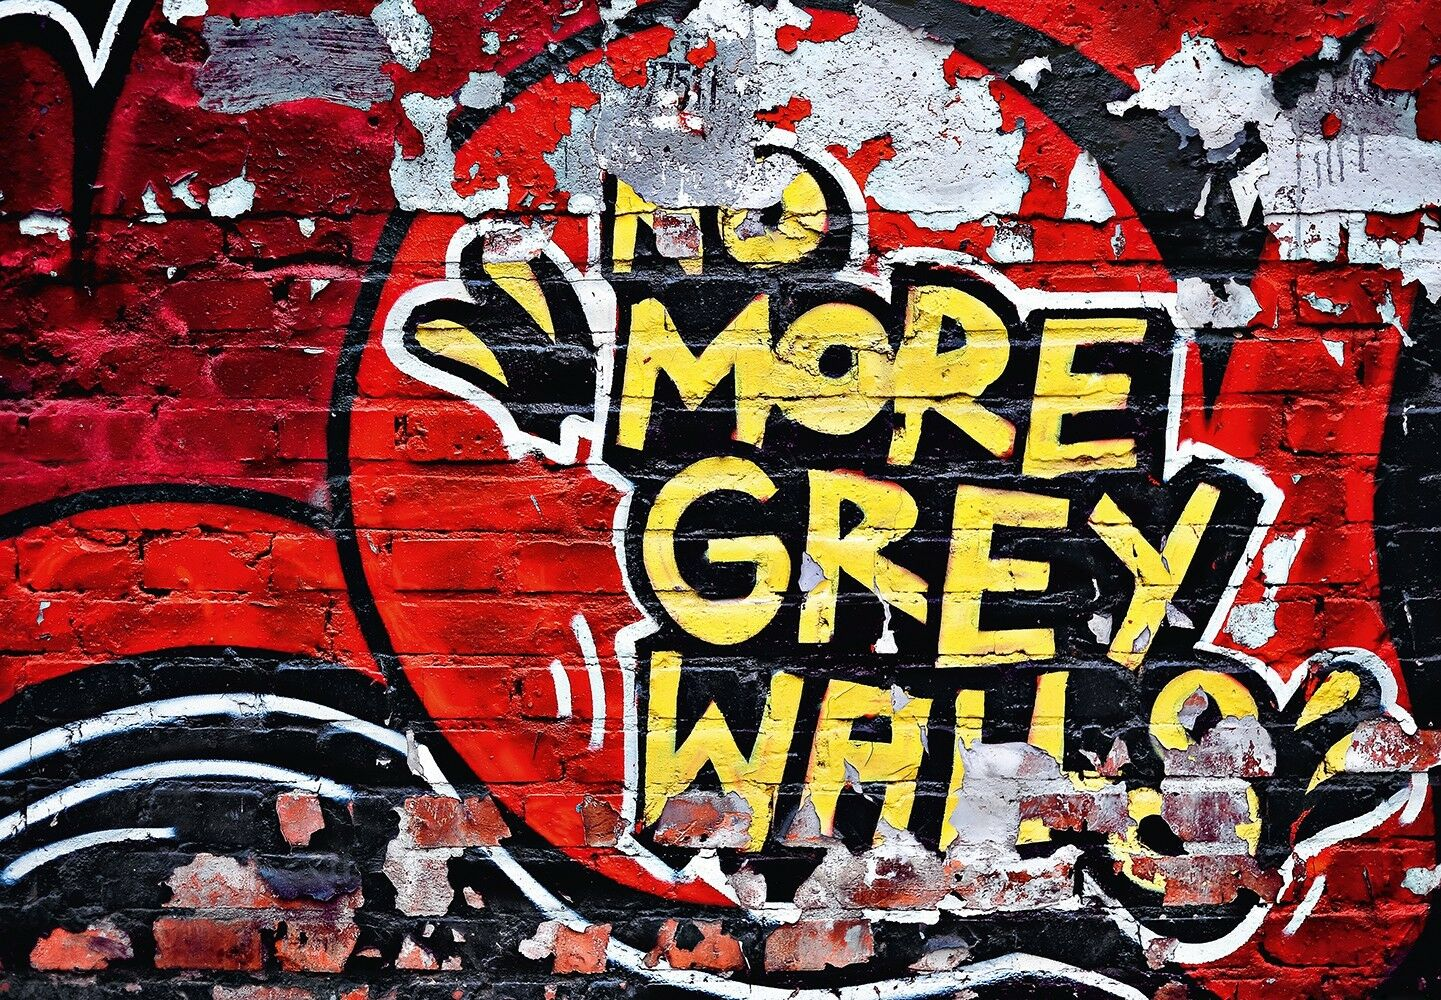 Wall mural photo wallpaper GRAFFITI Red wall art for home No More Grey Walls